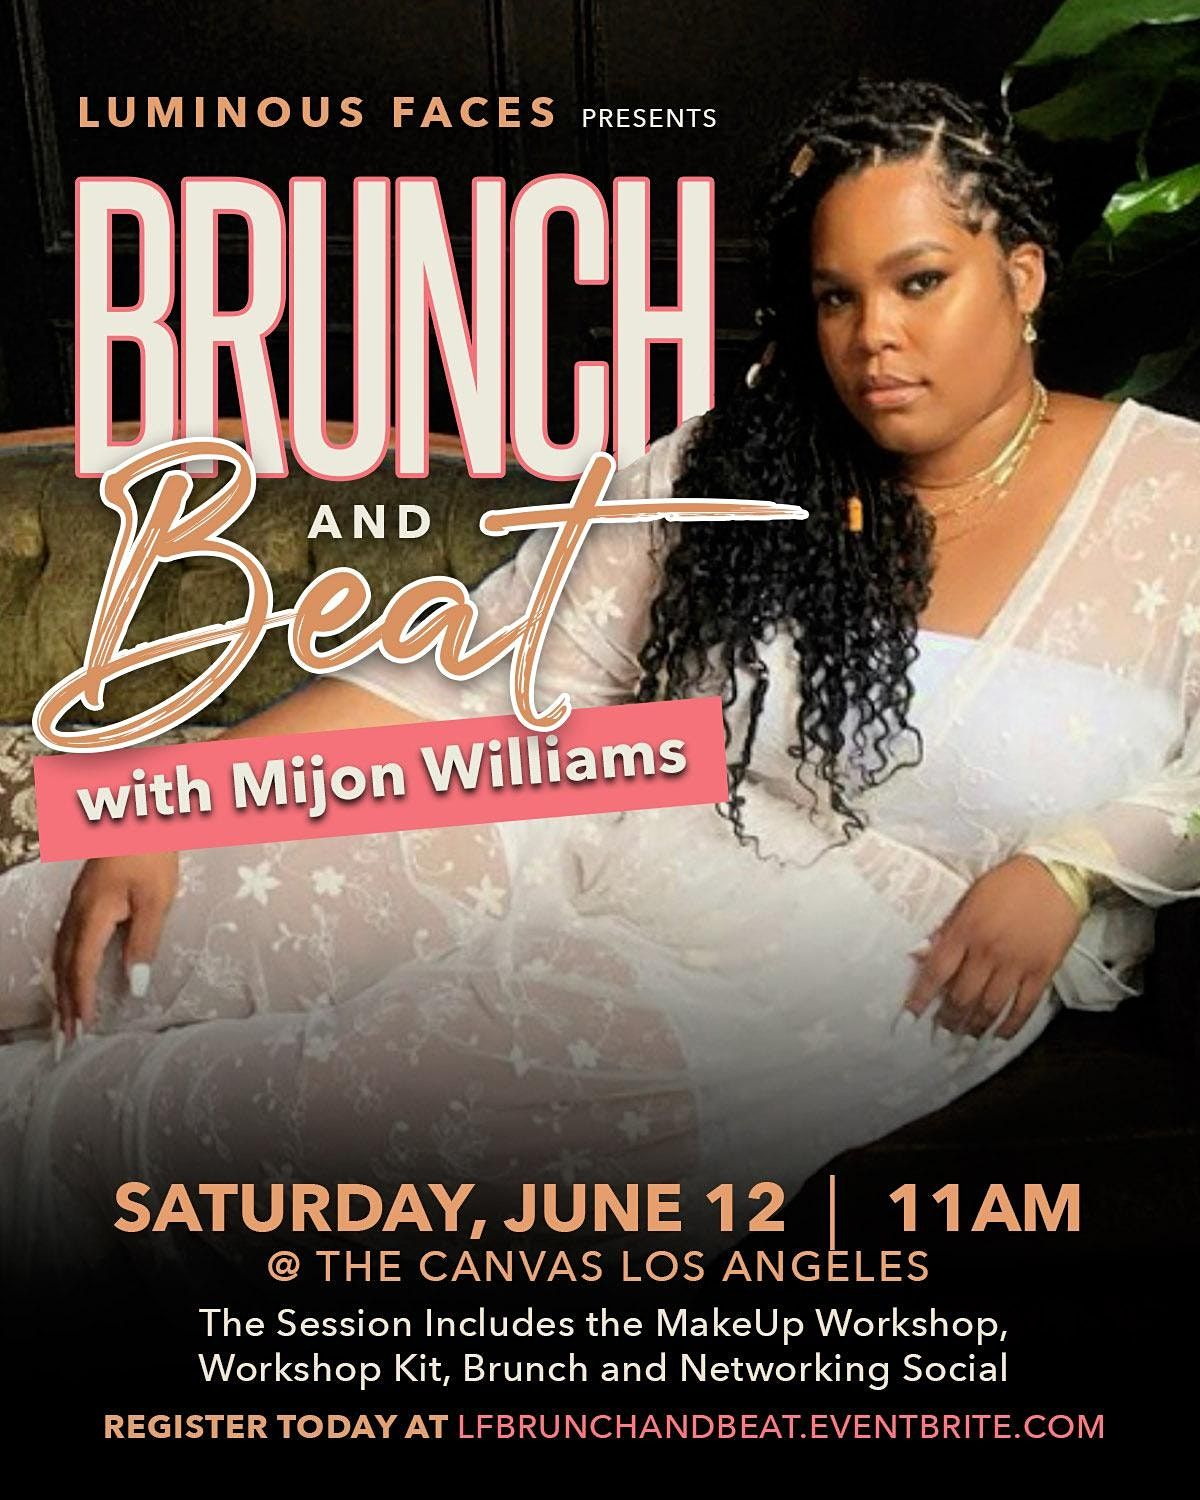 Brunch And Beat with Mijon Williams